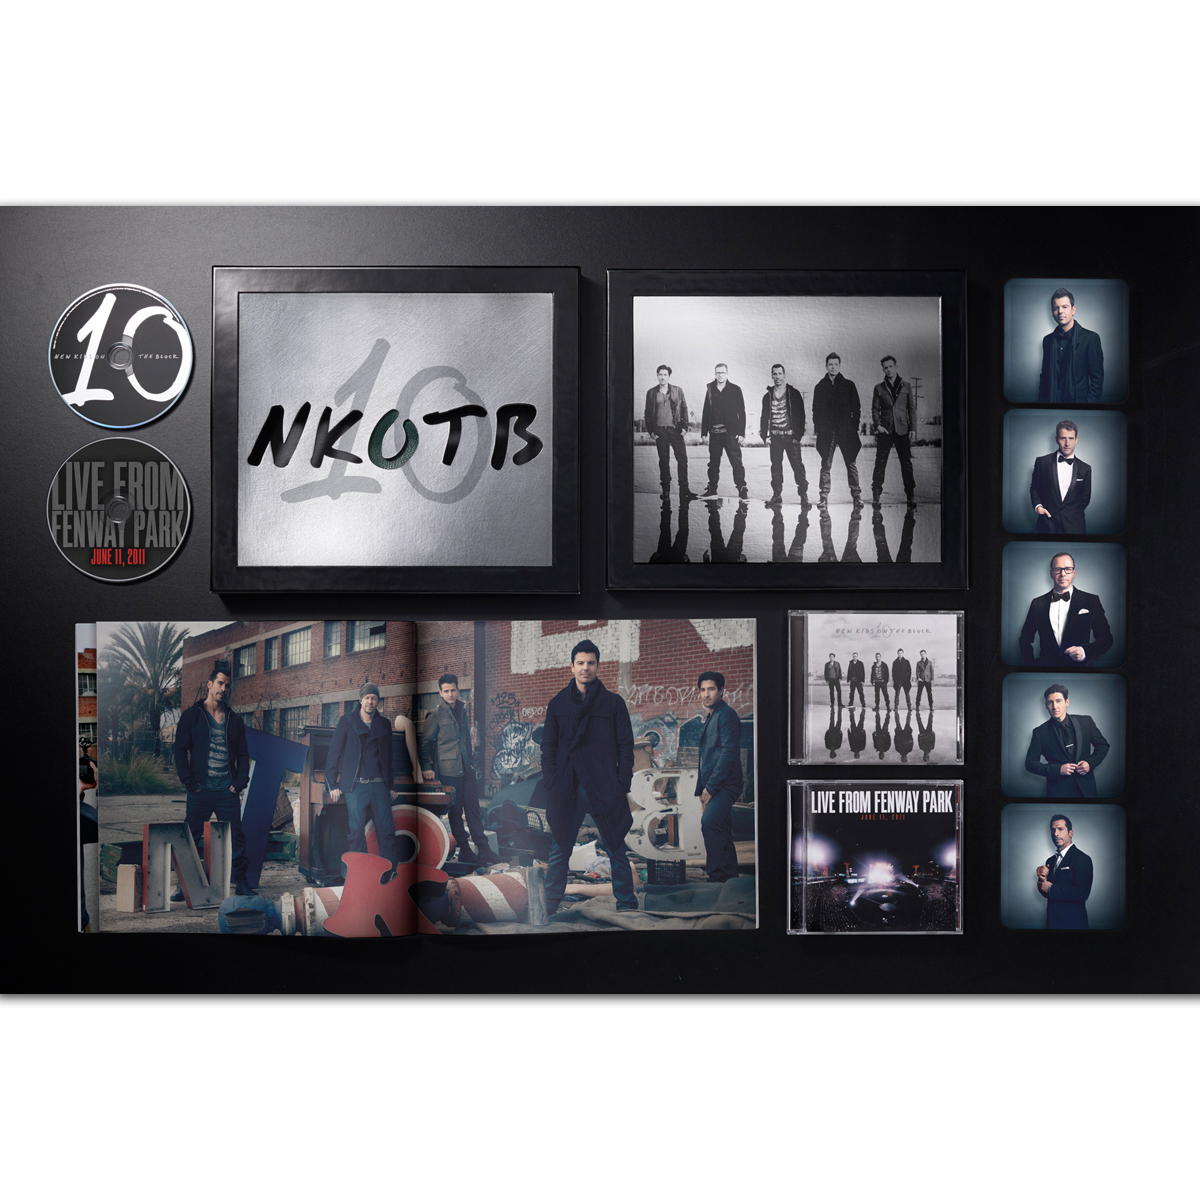 10, THE PREMIUM DELUXE BOX SET